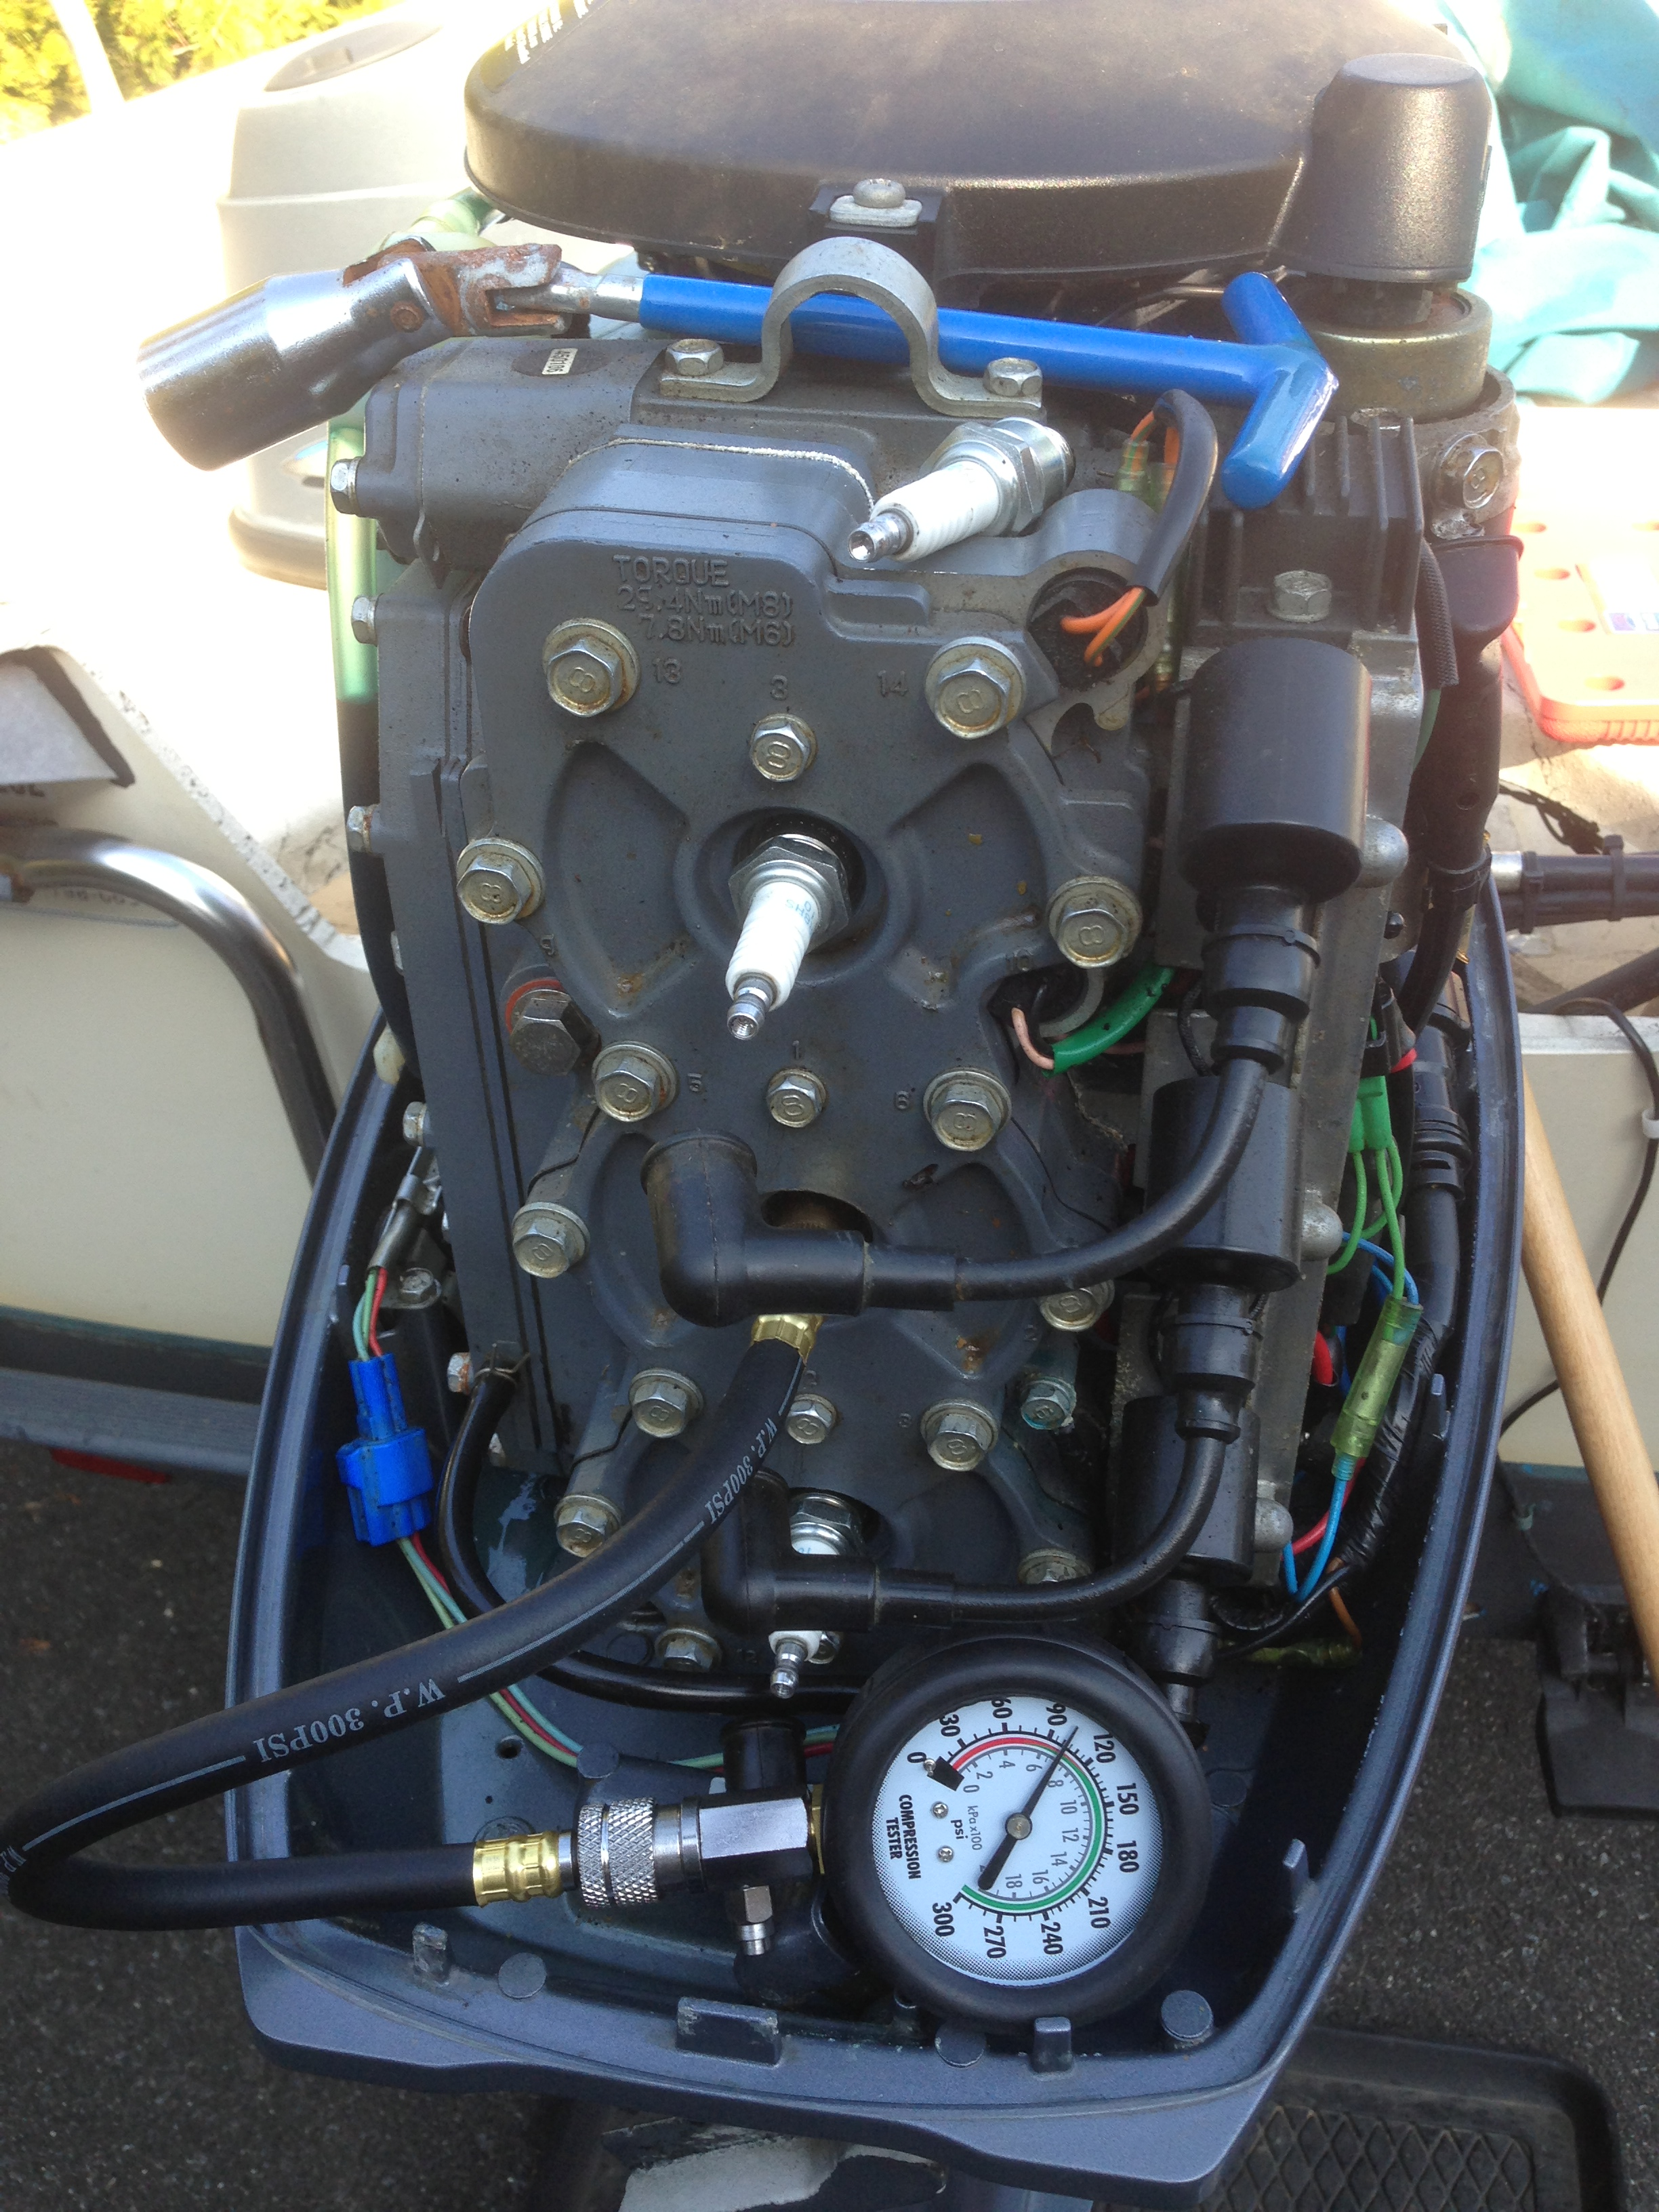 2002 Yamaha 50 HP 2 stroke - General Buy/Sell/Trade Forum